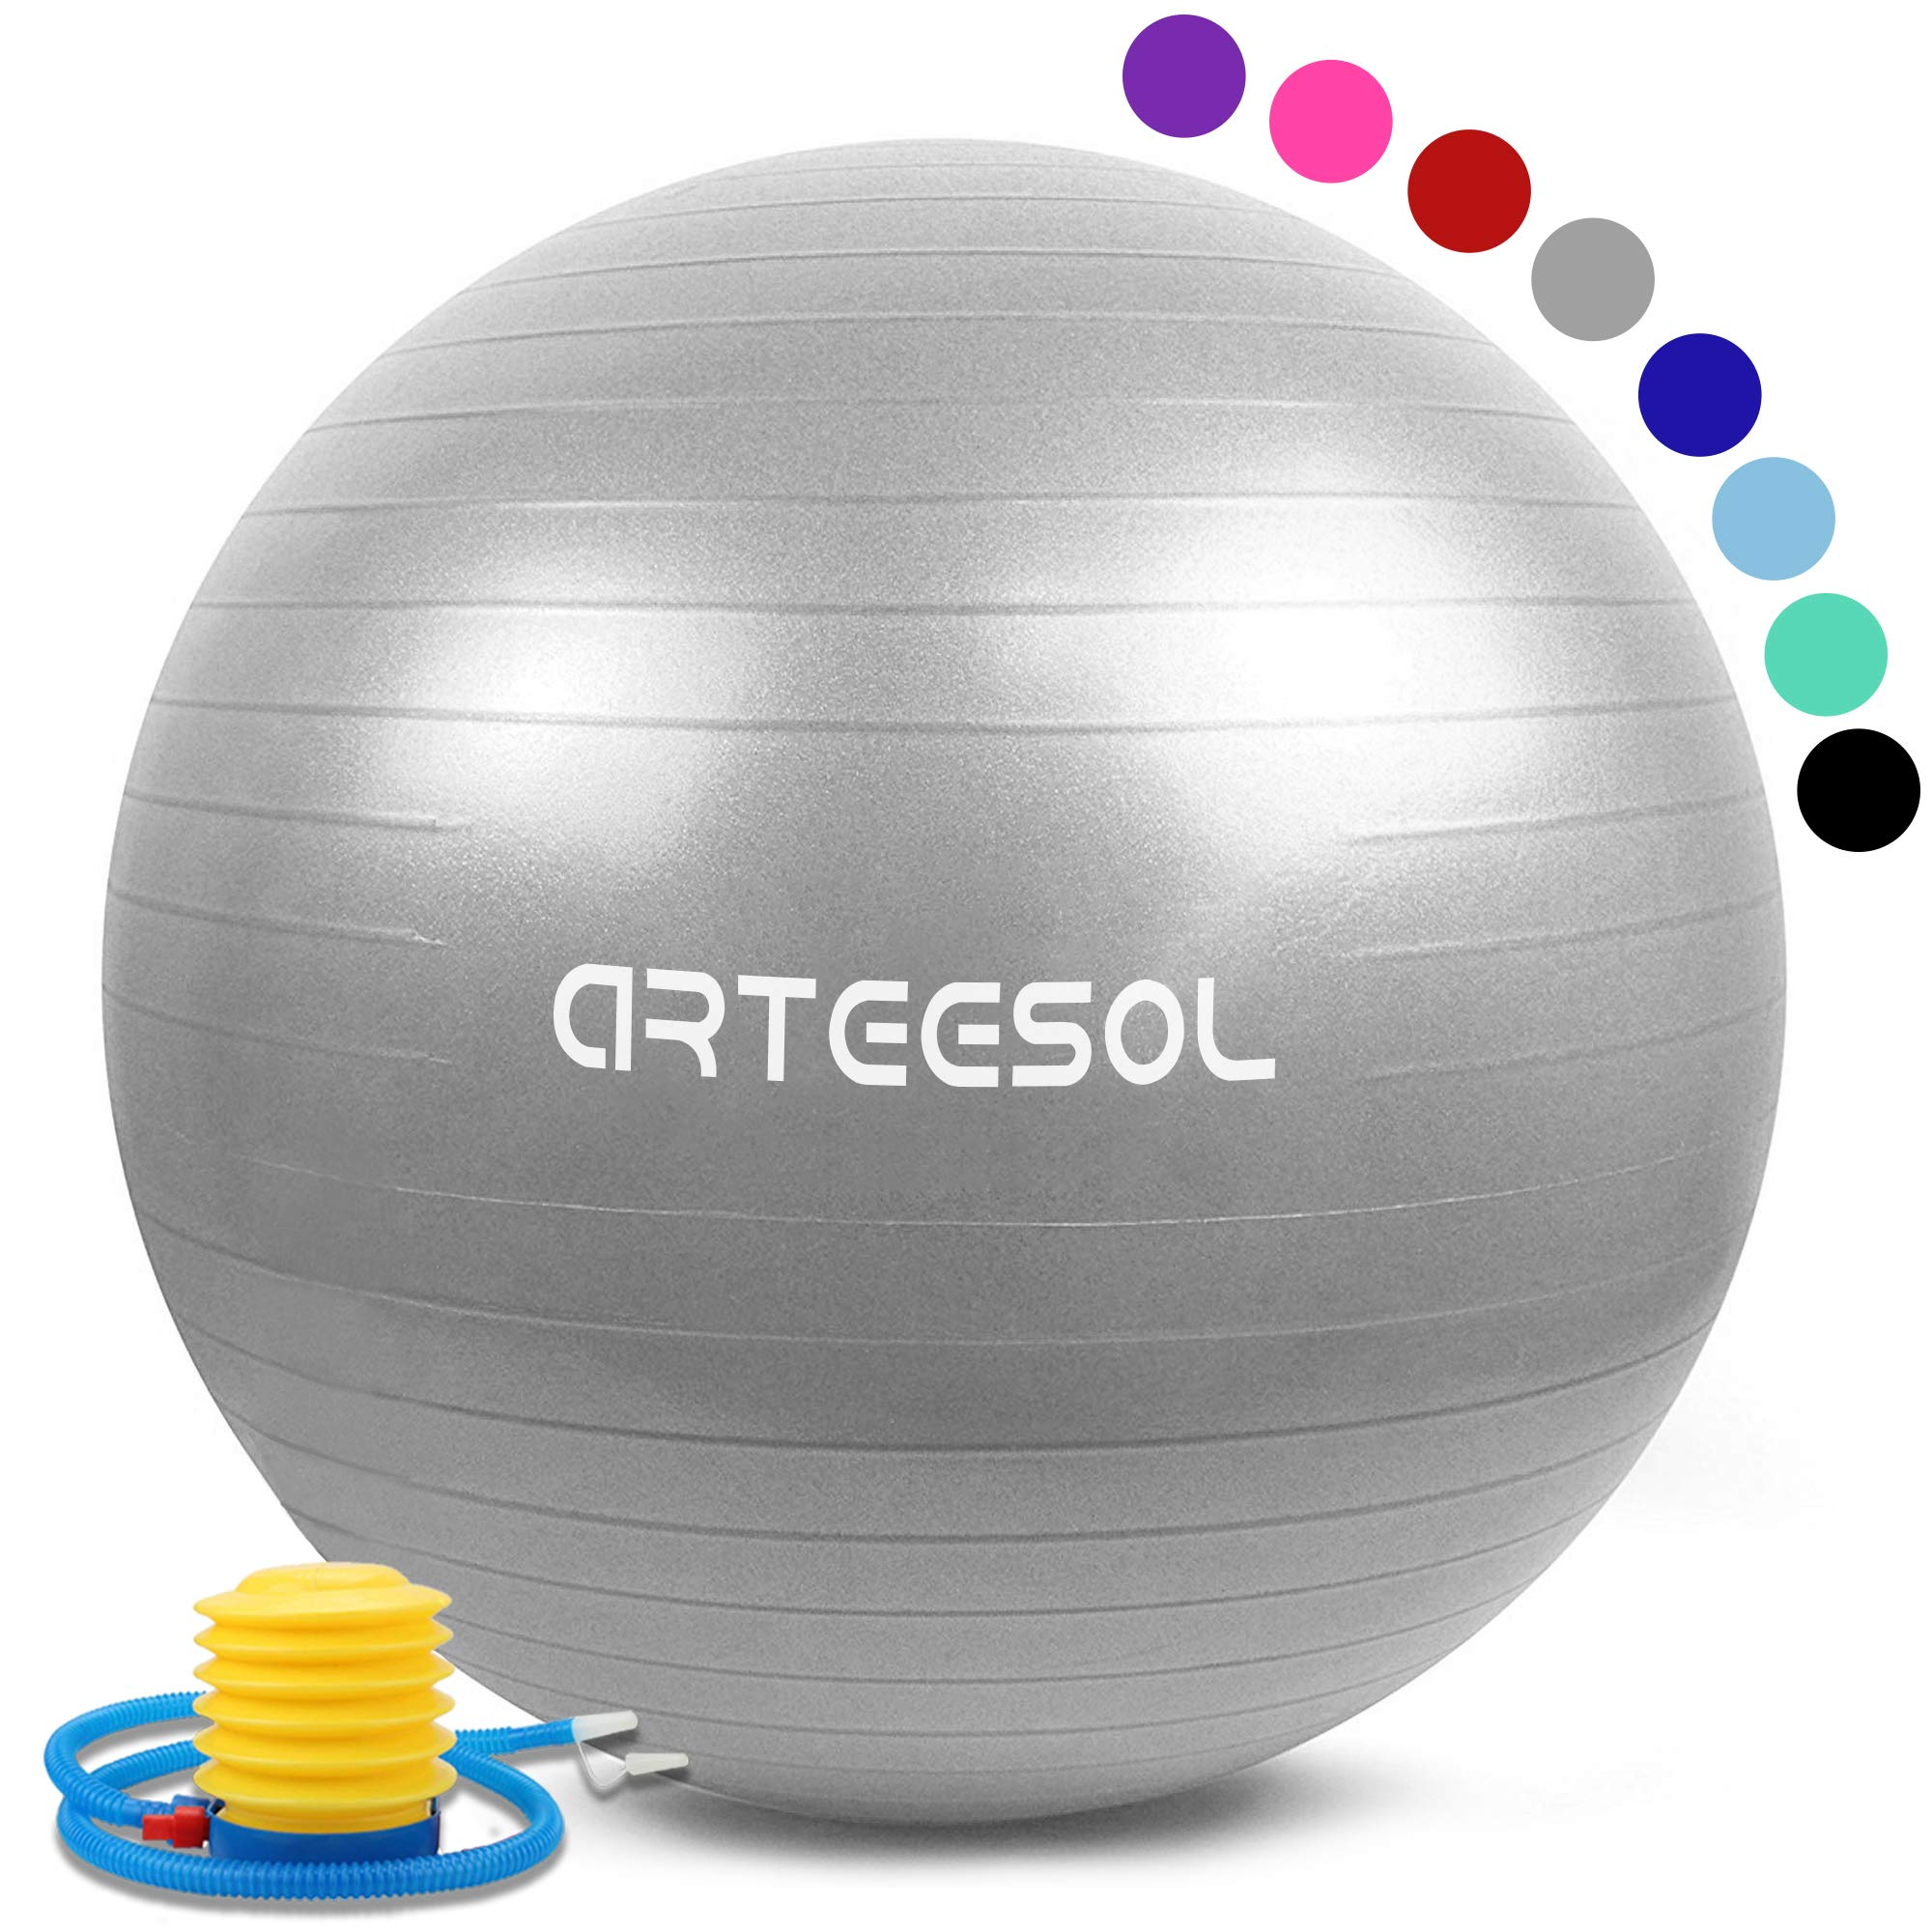 arteesol Exercise Yoga Ball, Gym Ball with Quick Pump 75cm/65cm/55cm/45cm Anti-Slip Exercise Ball Heavy Duty Gym Ball for Physical Therapy, Gym and Home Exercise (Silver, 75cm) by arteesol